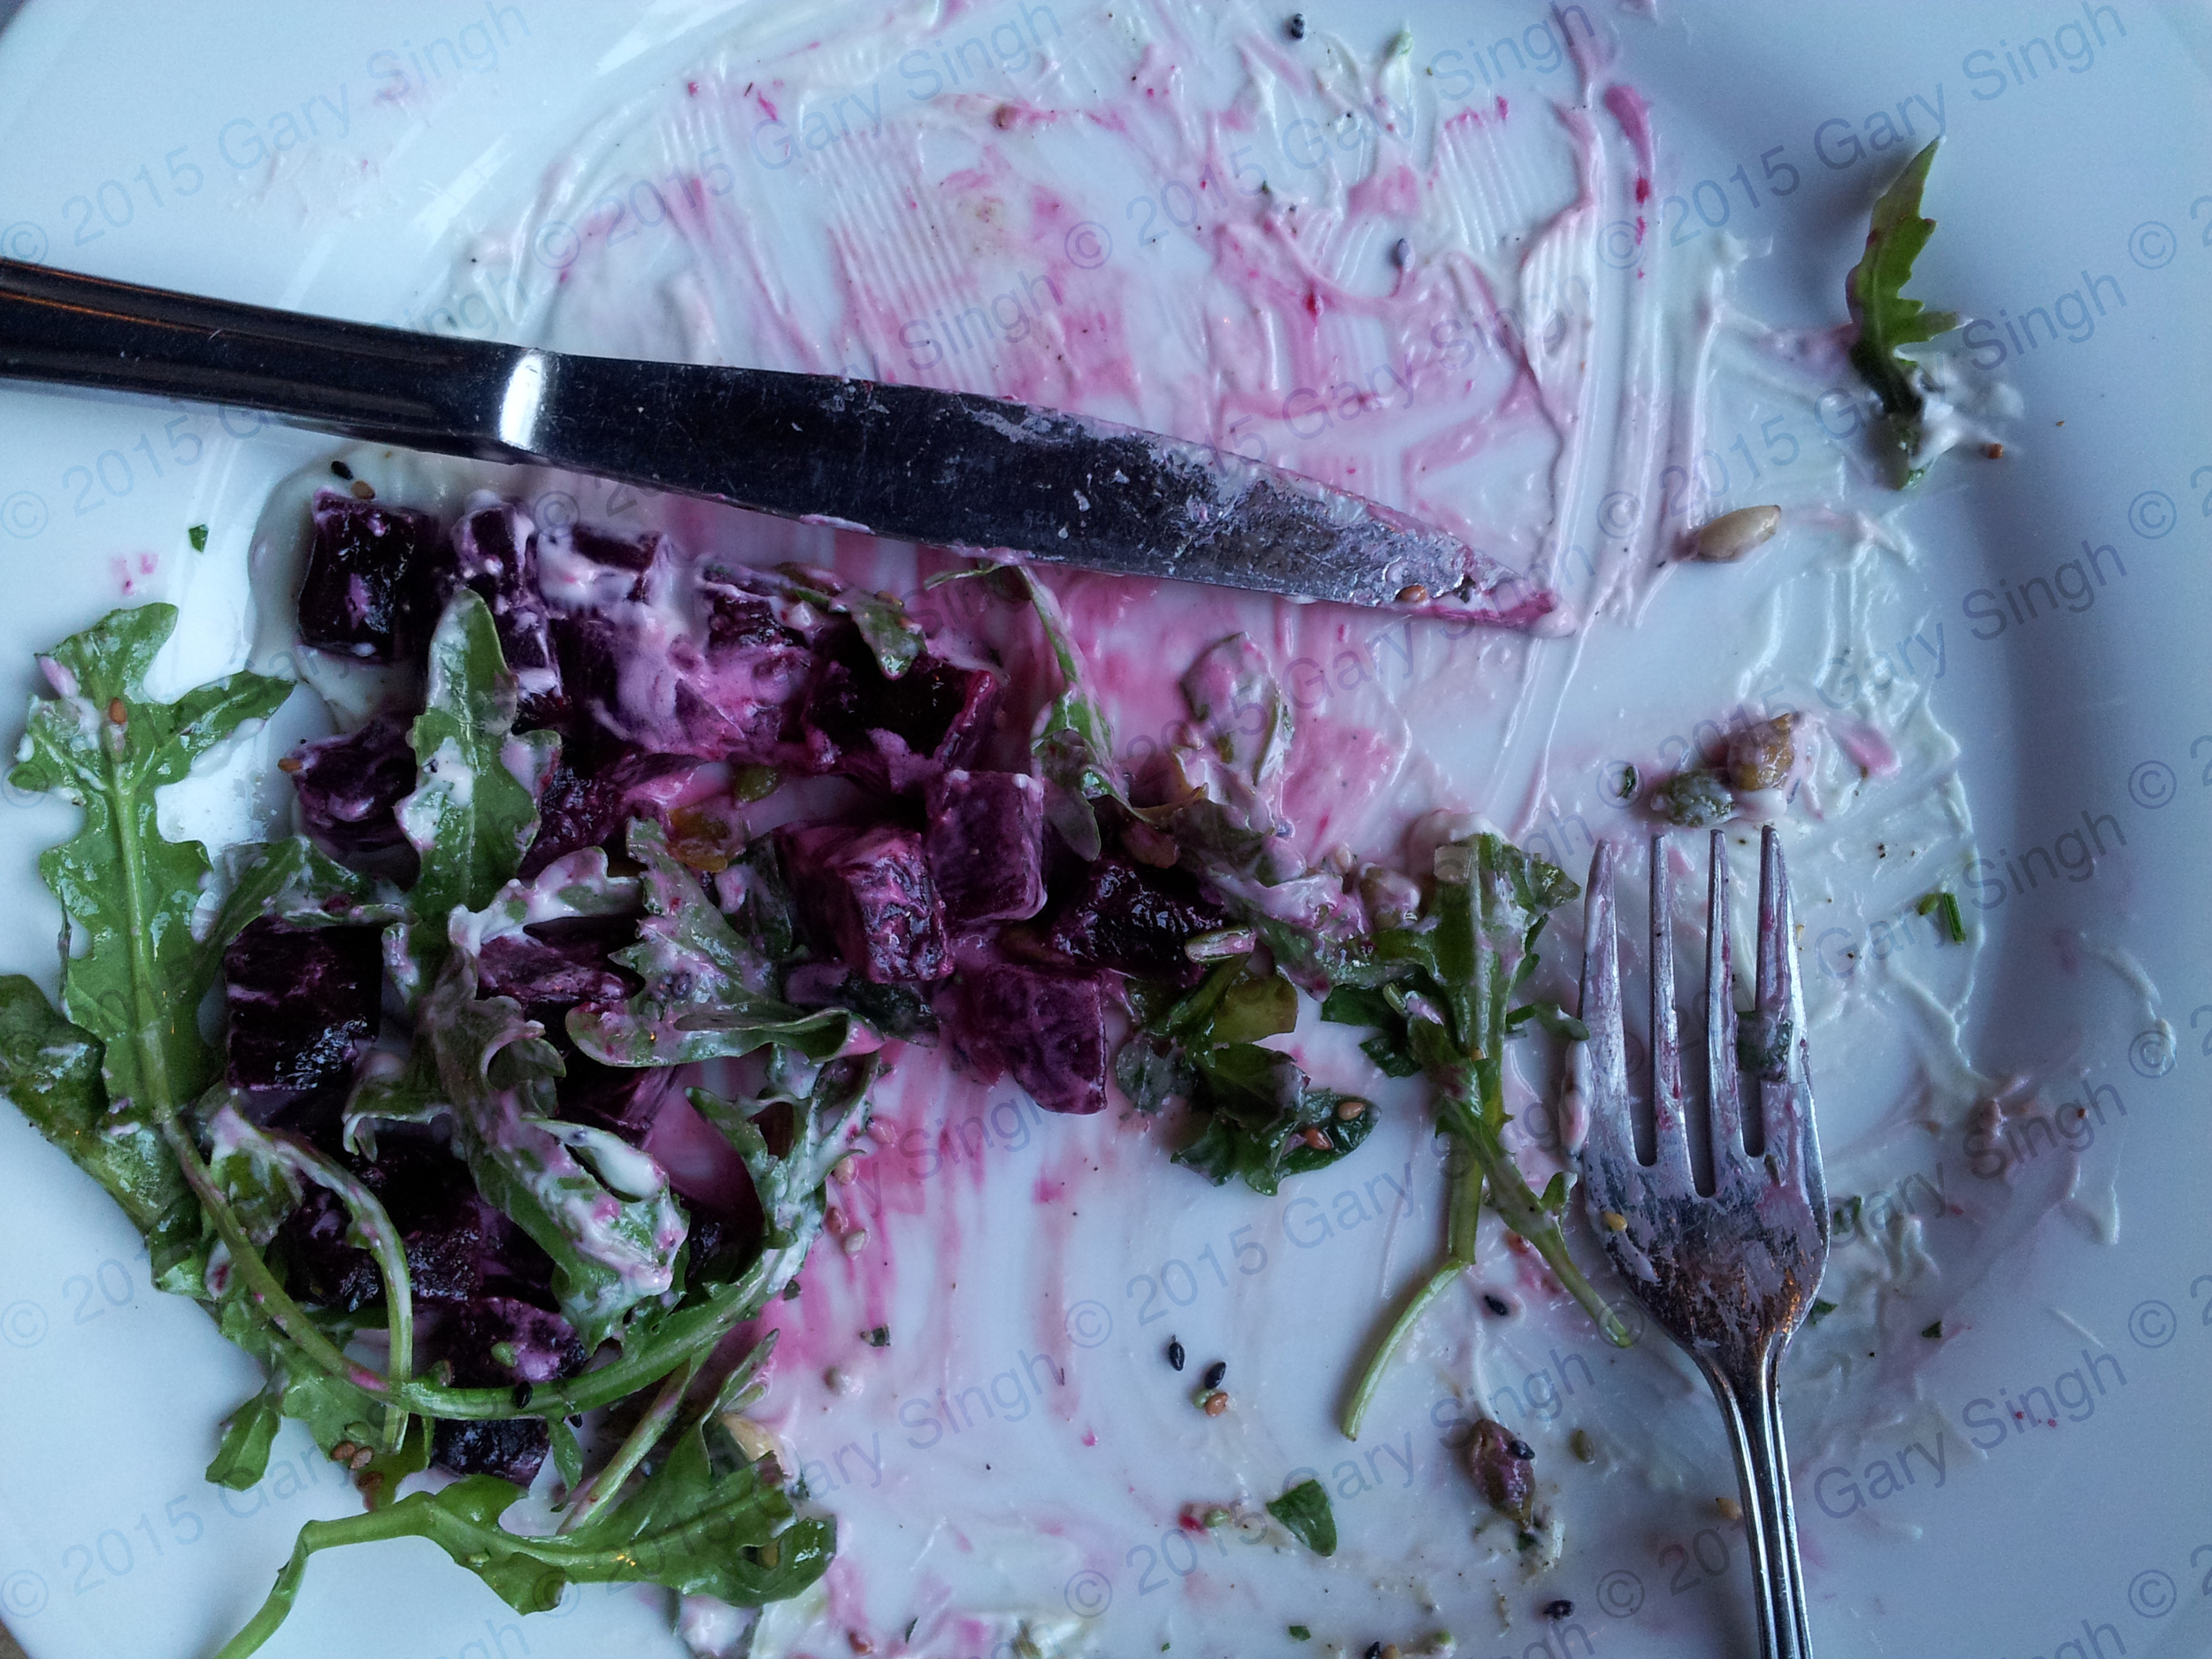 winnipeg-beet-salad.jpg